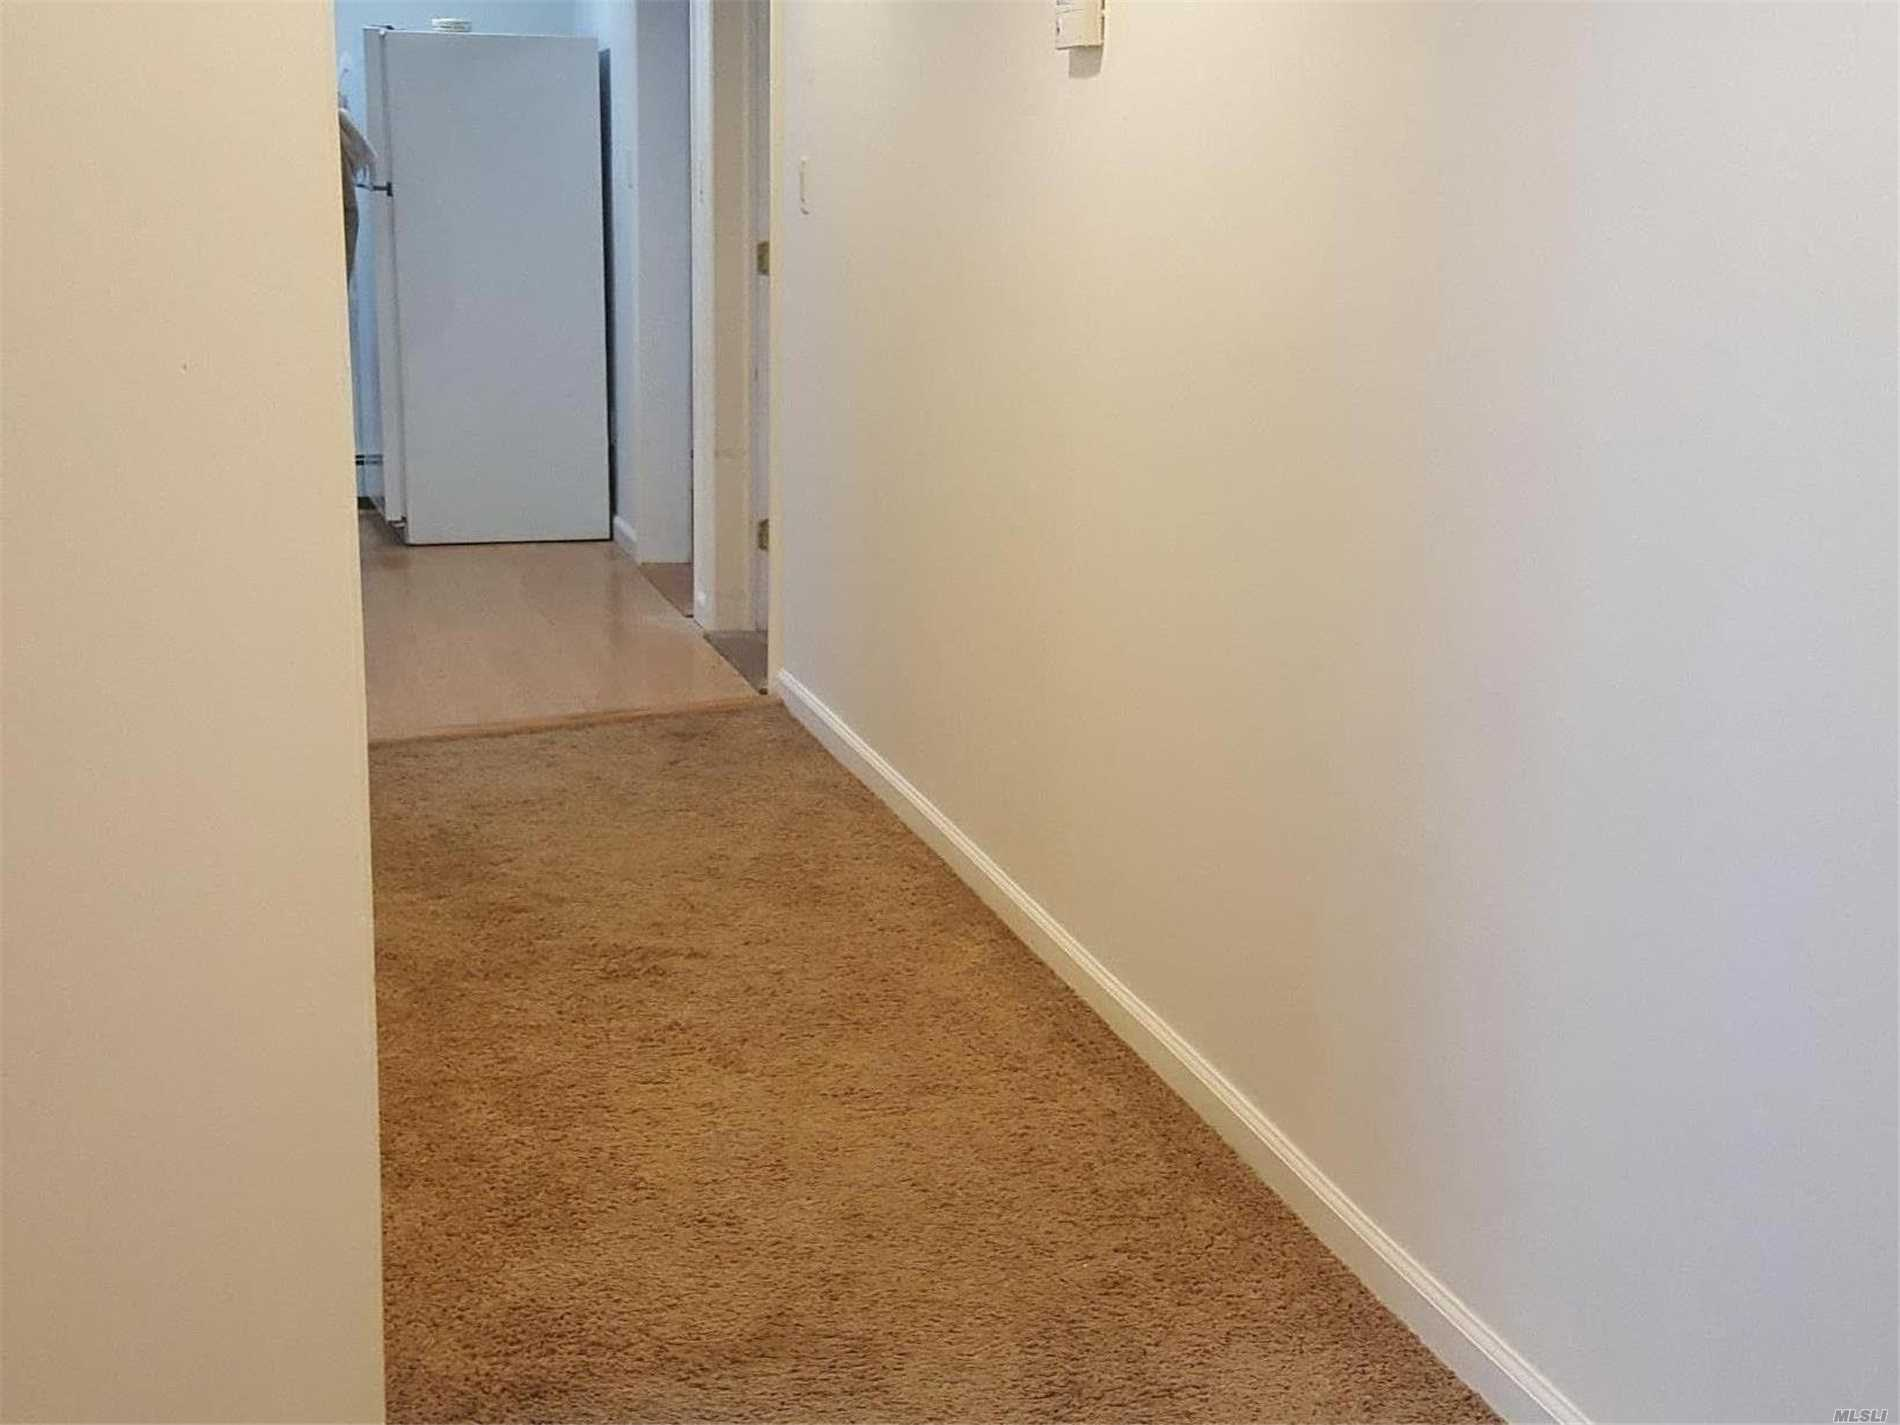 This Beautiful 1 Bedroom Apartment With Eik, Living Room, Sliding Doors From Bedroom To Private Patio Which Is Spacious. Extra Closets, And Bonus Room For Storage